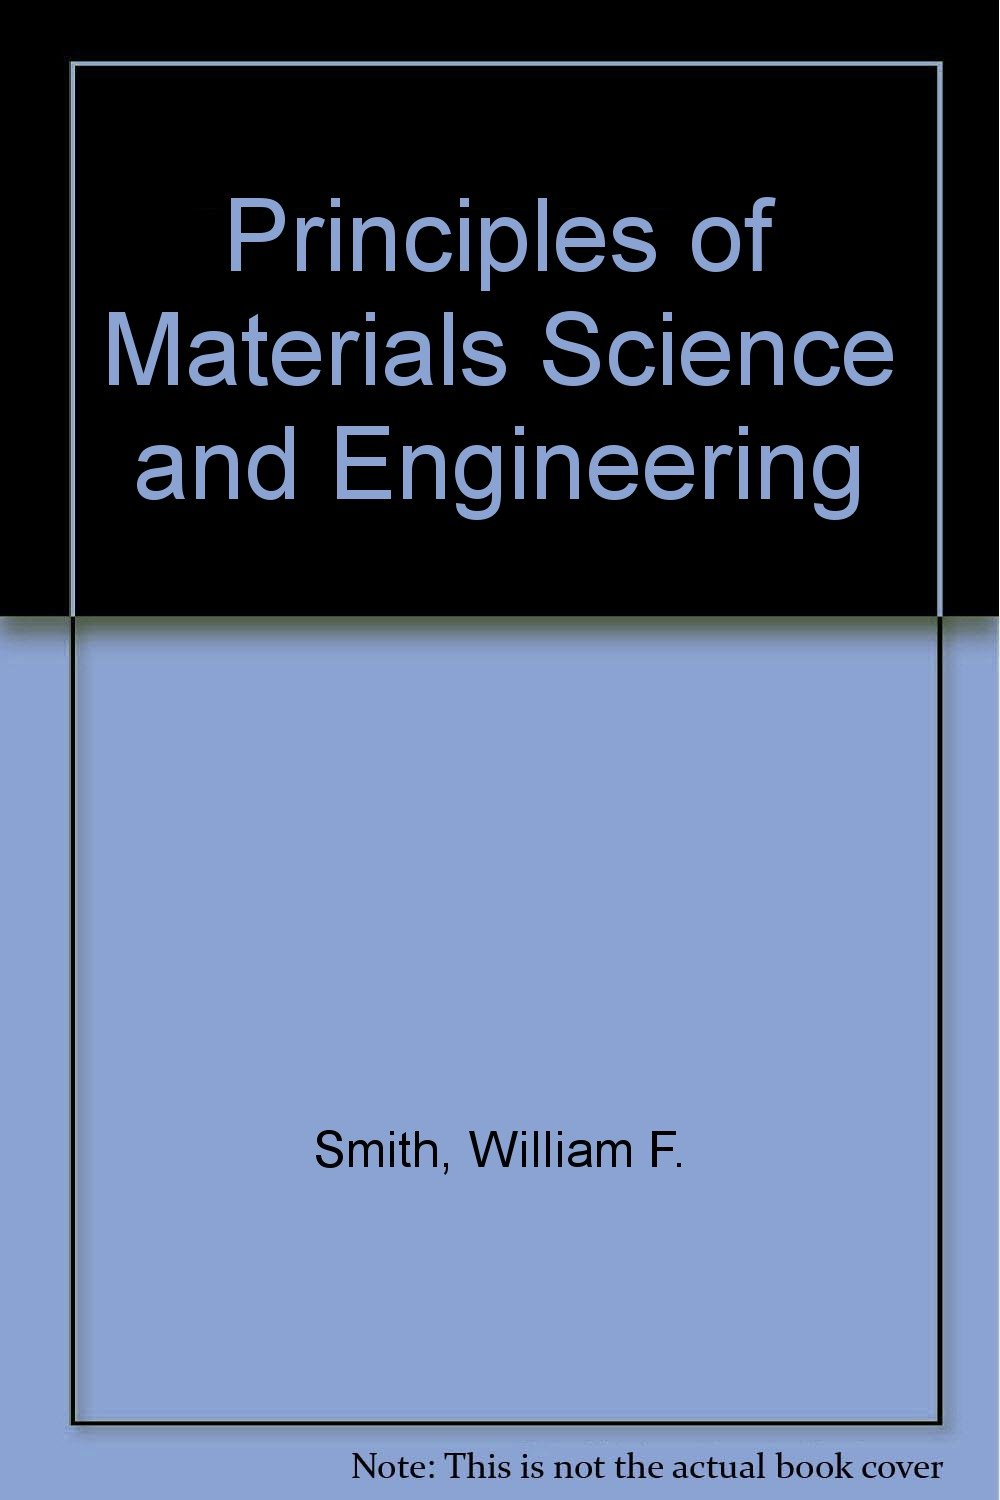 Principles of materials science and engineering william f smith principles of materials science and engineering william f smith 9780071147170 amazon books fandeluxe Gallery